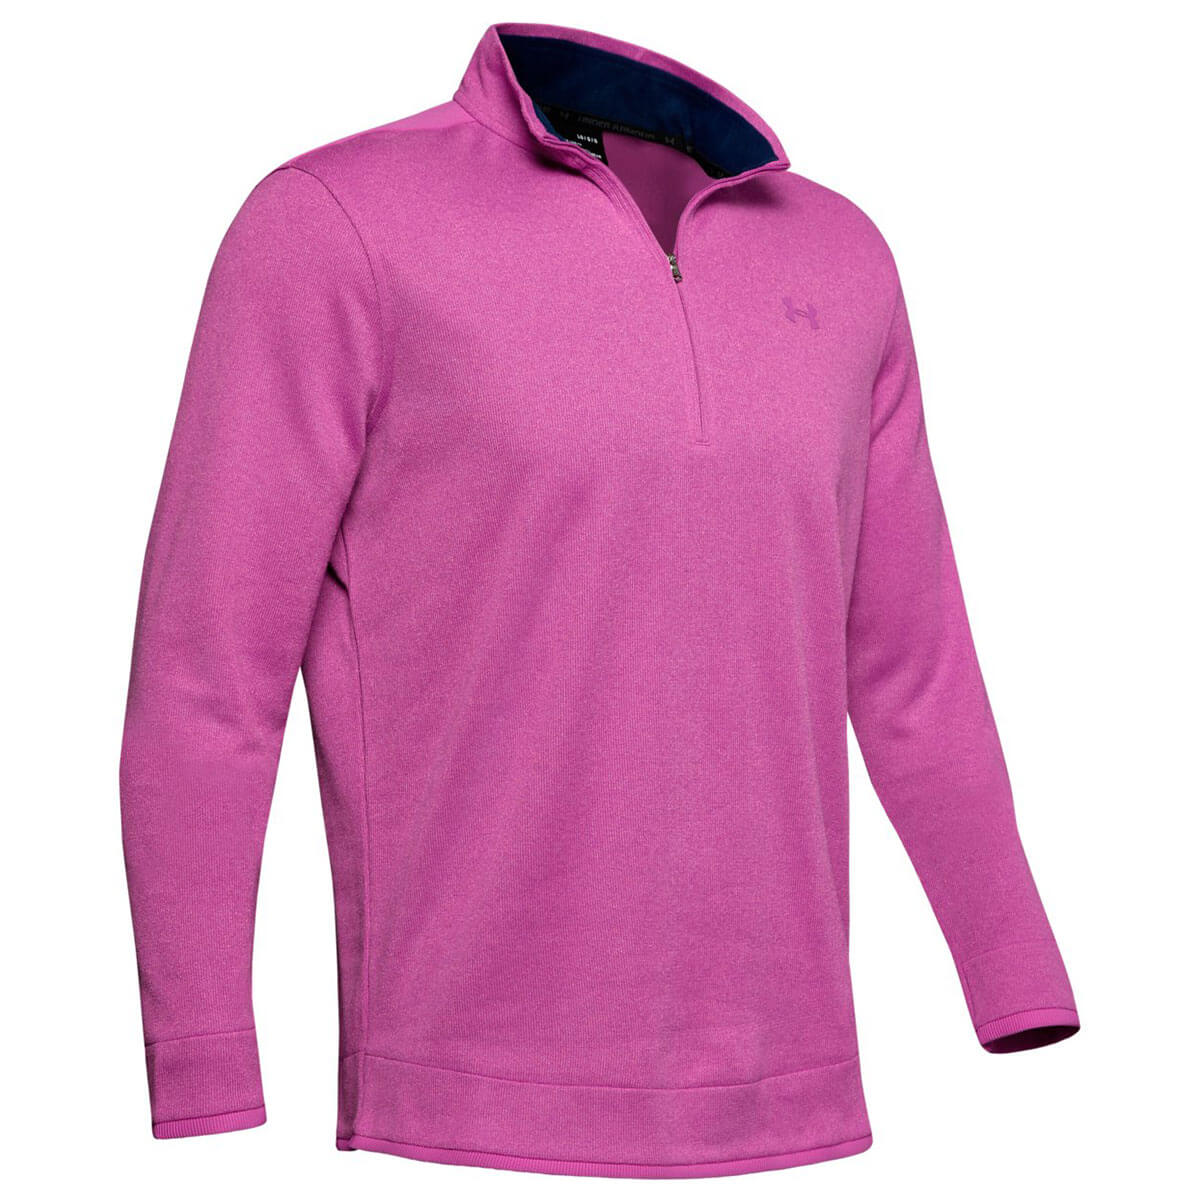 Under-Armour-Homme-UA-sweaterfleece-1-2-zip-resistant-a-l-039-eau-Pullover-40-OFF-RRP miniature 31